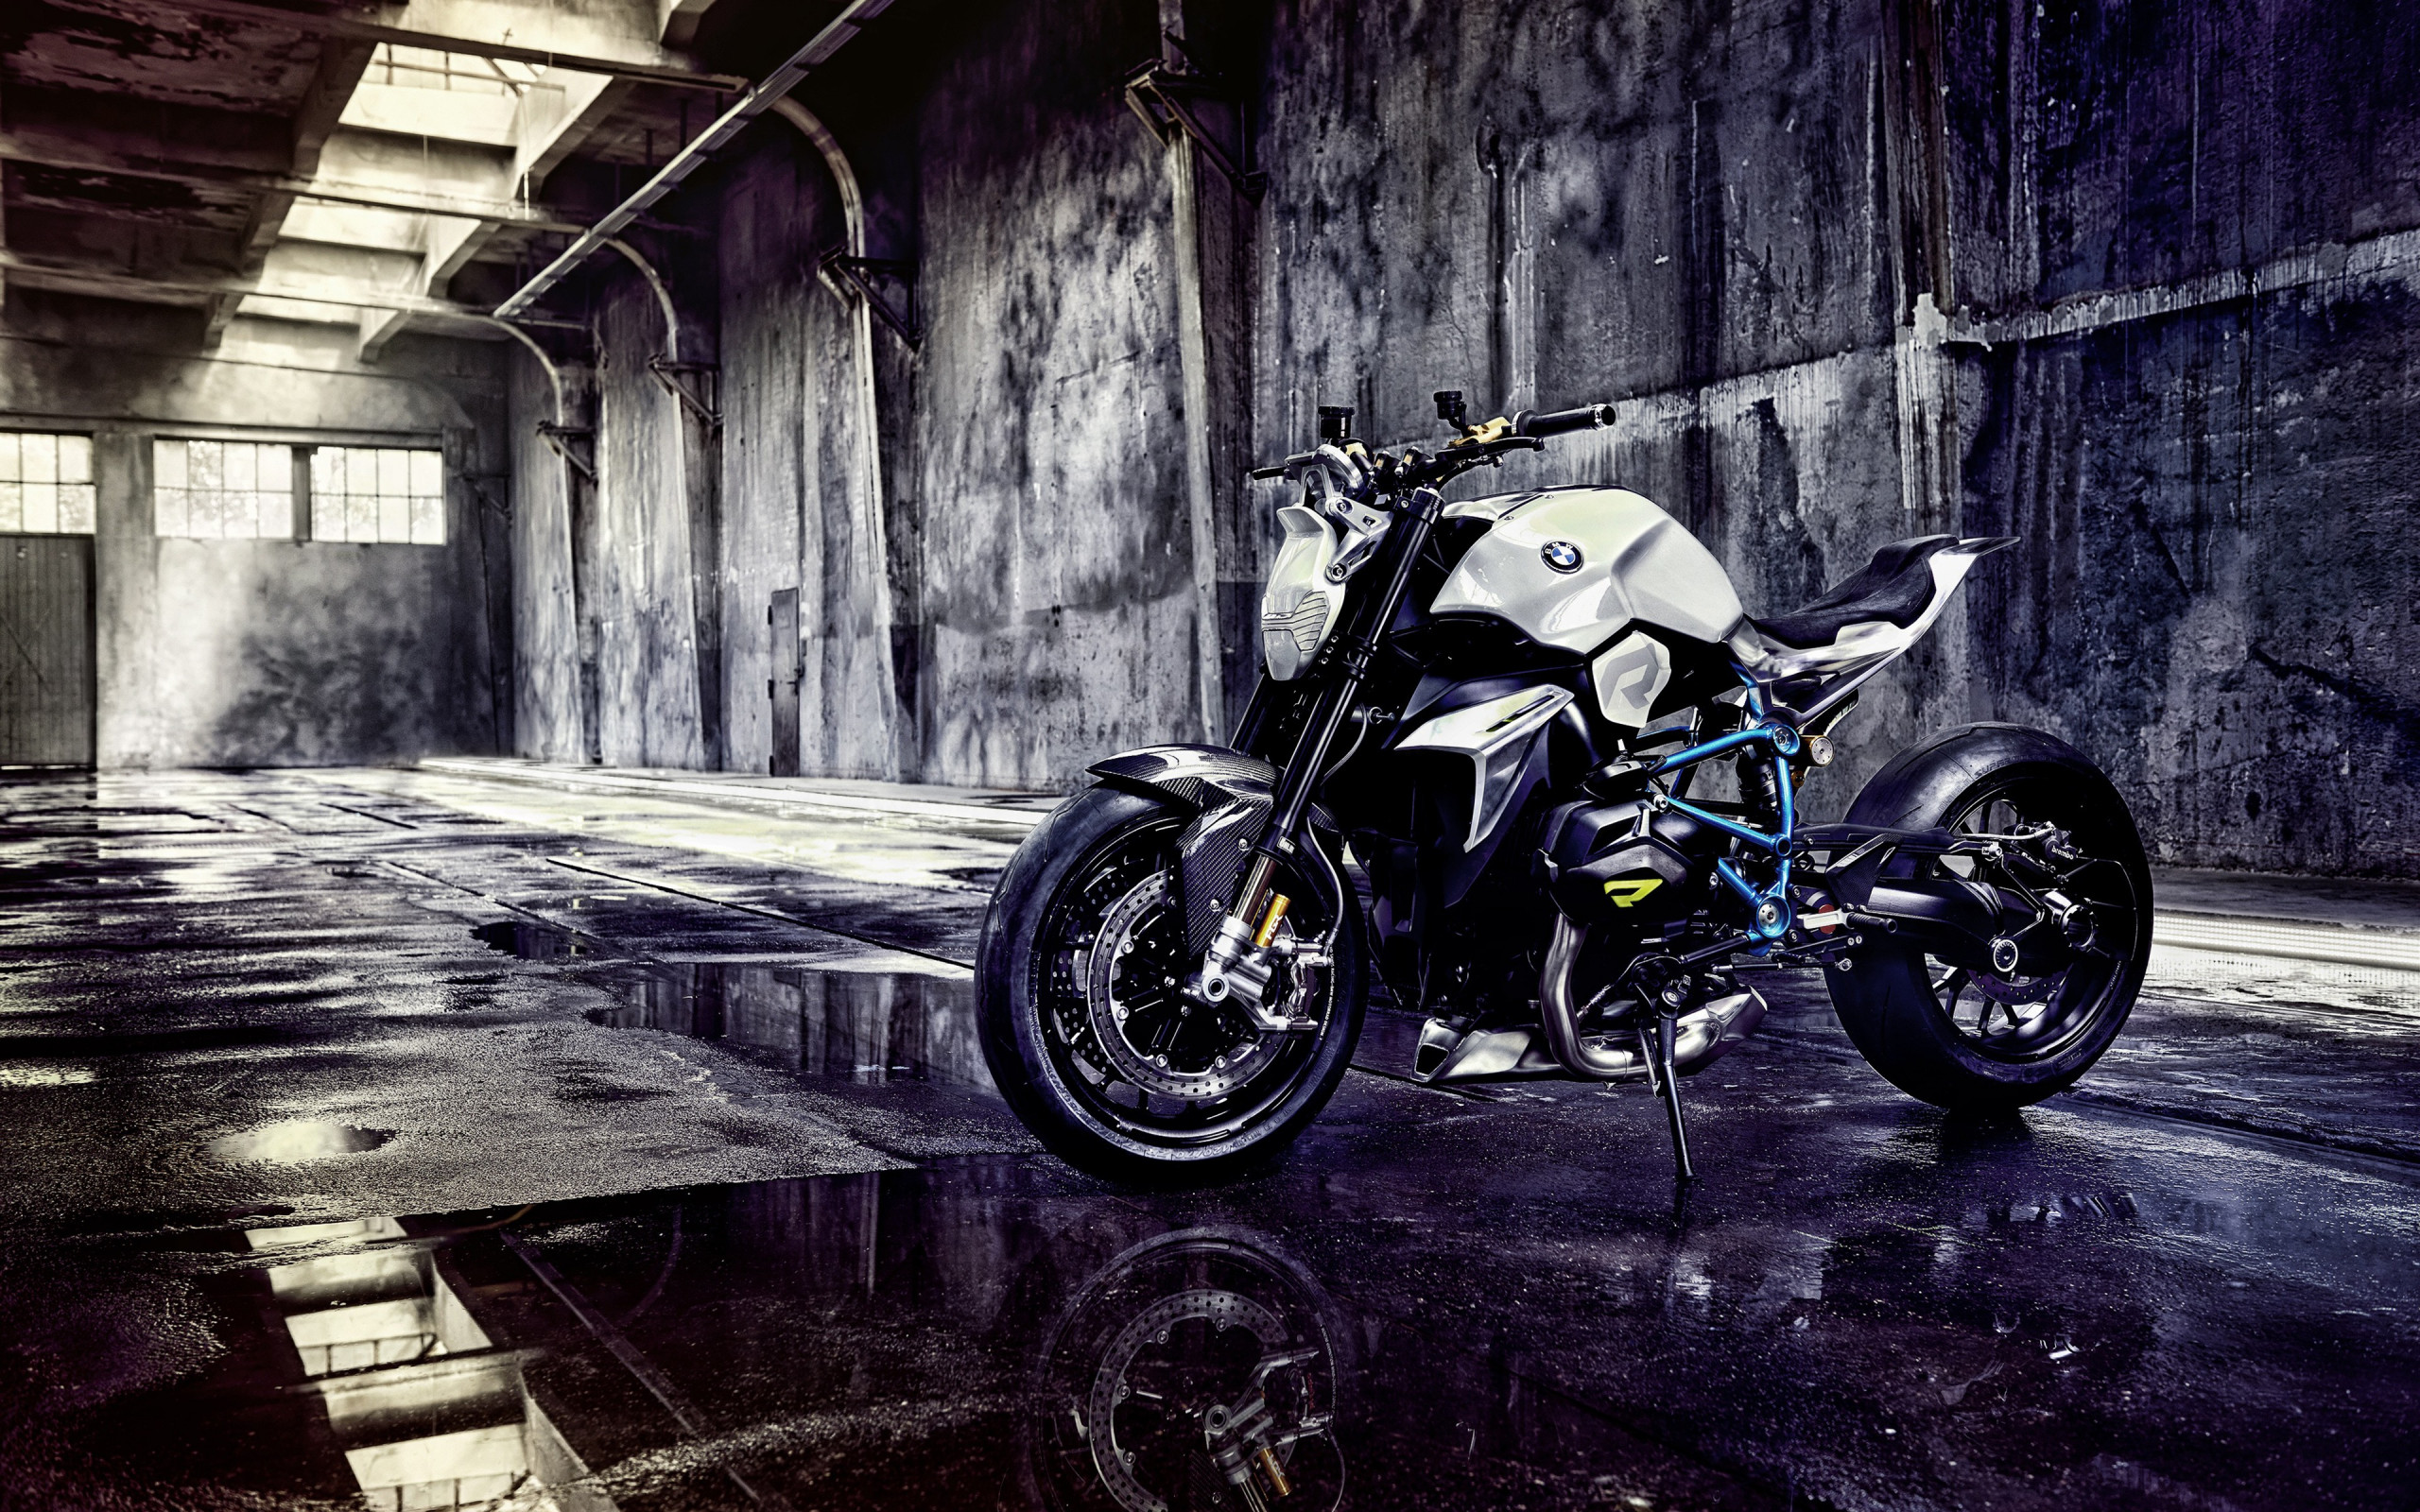 BMW Concept Roadster Motorcycle wallpaper 2560x1600